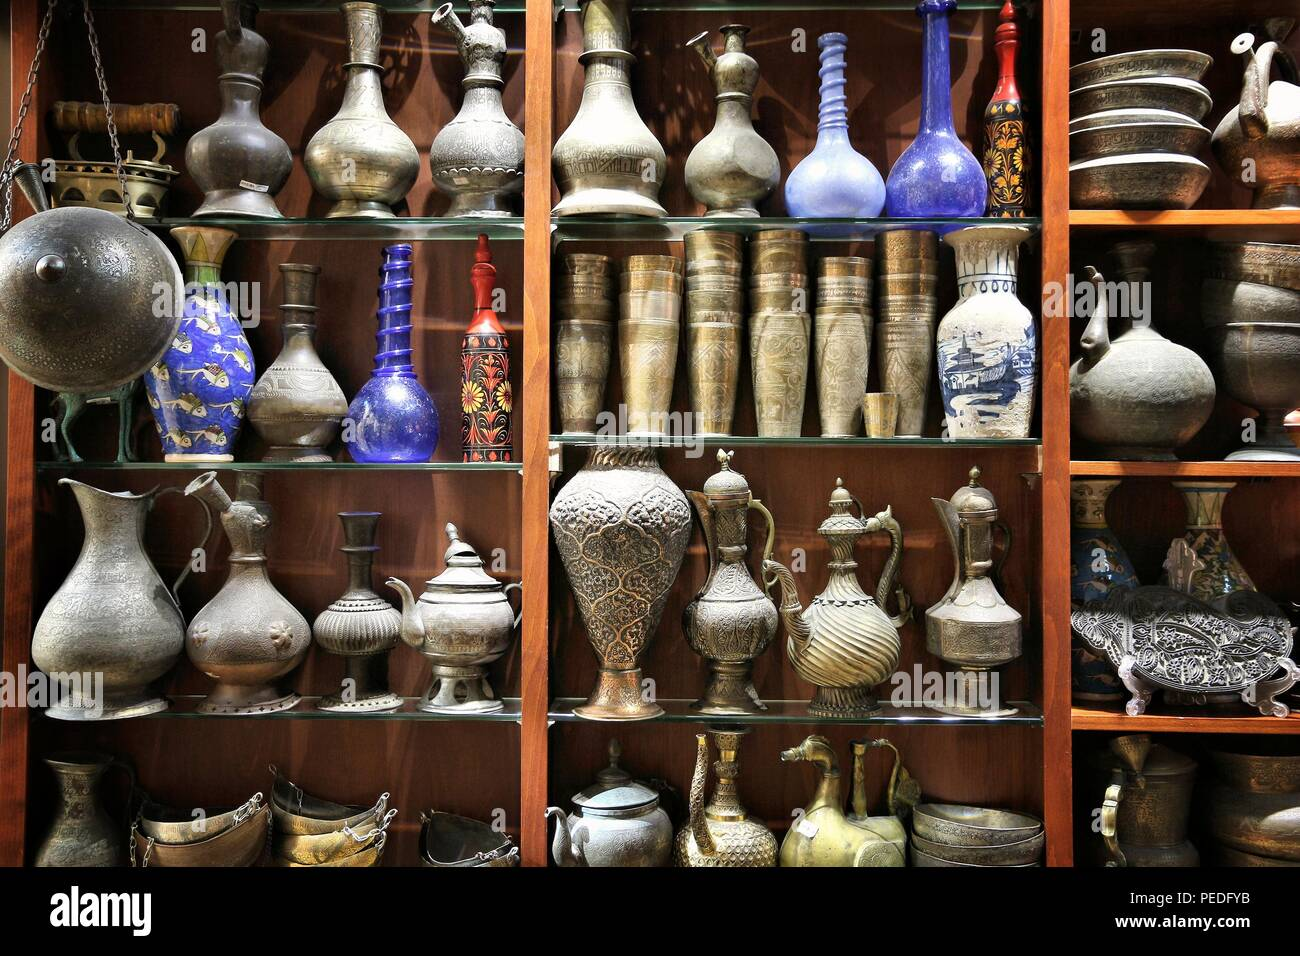 DUBAI, UAE - NOVEMBER 23, 2017: Antique brass jugs and glass vases at Souk Madinat Jumeirah in Dubai. The traditional Arab style bazaar is part of Mad Stock Photo